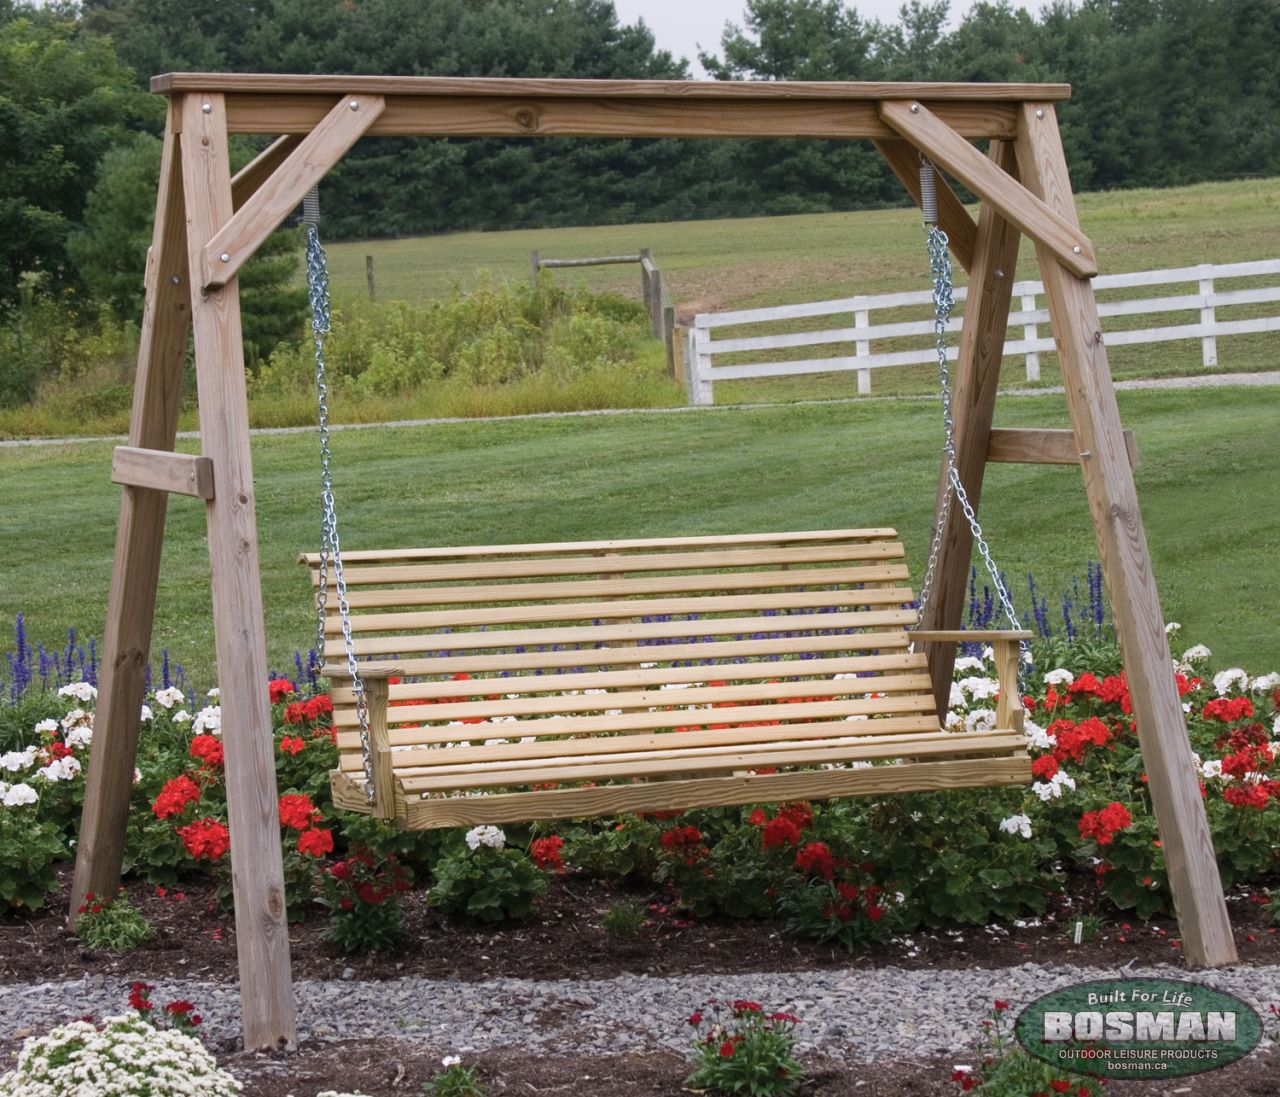 Wooden A-Frame for 5\' Porch Swing - Our Products - Bosman Homefront